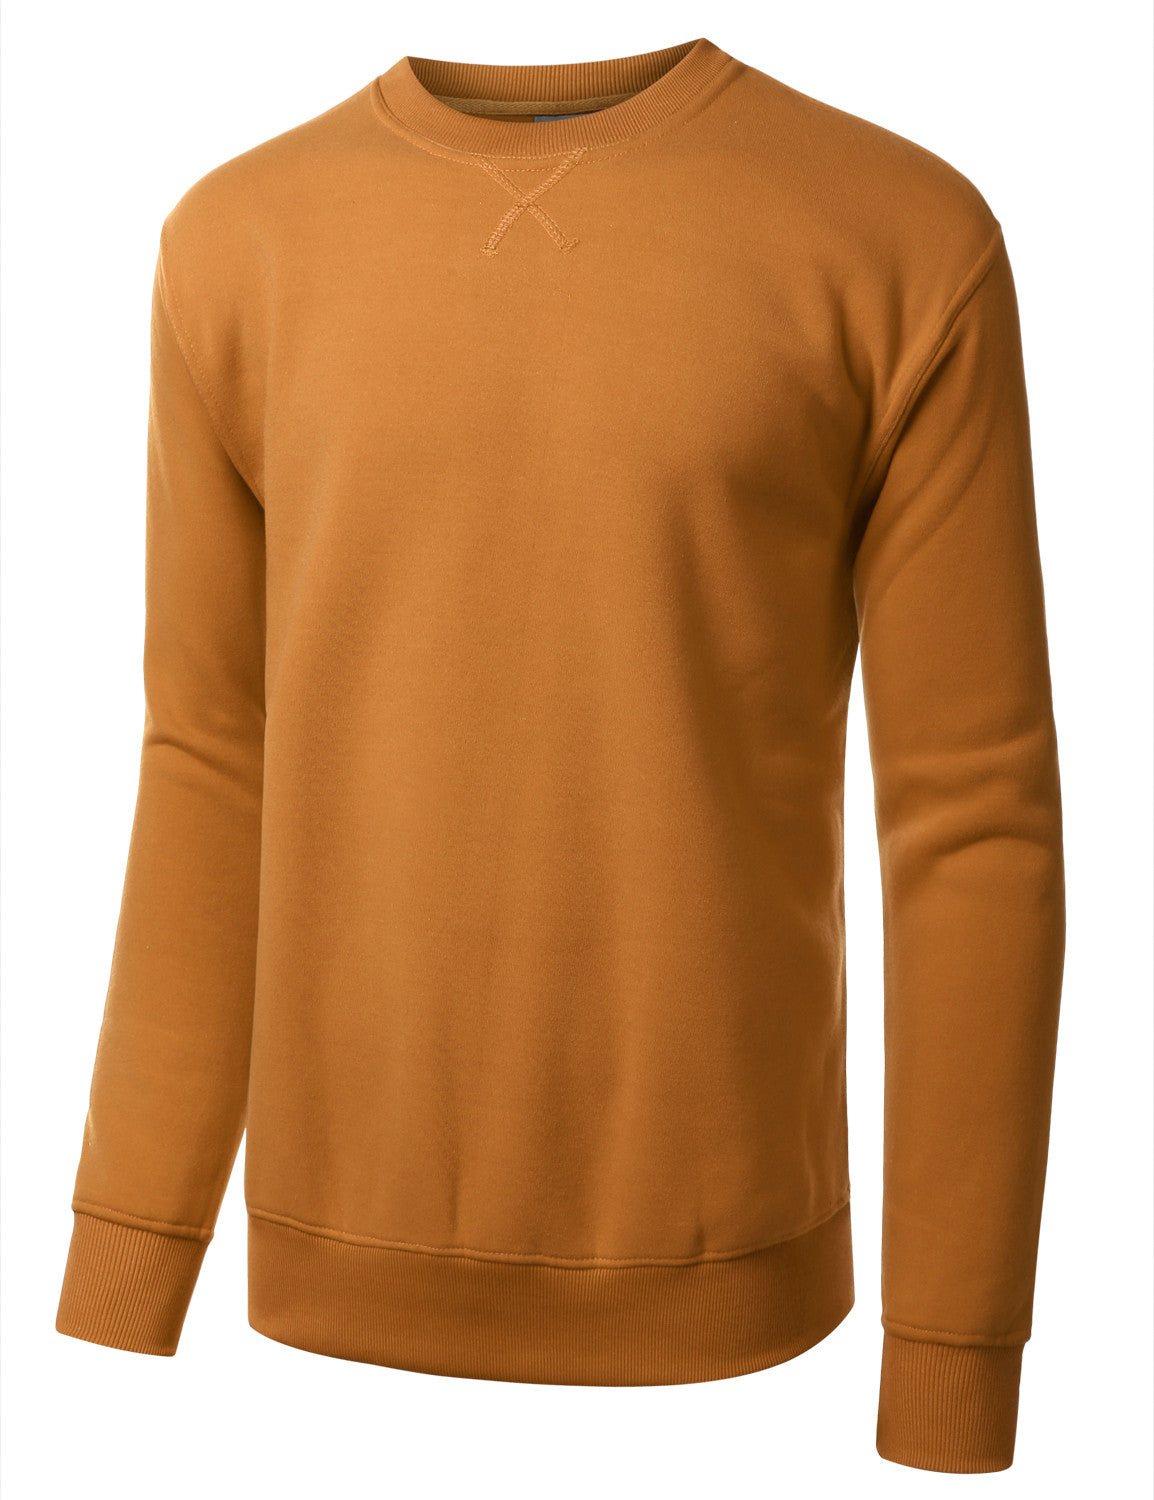 TIMBER Basic Crewneck Sweatshirt-Various Colors - URBANCREWS